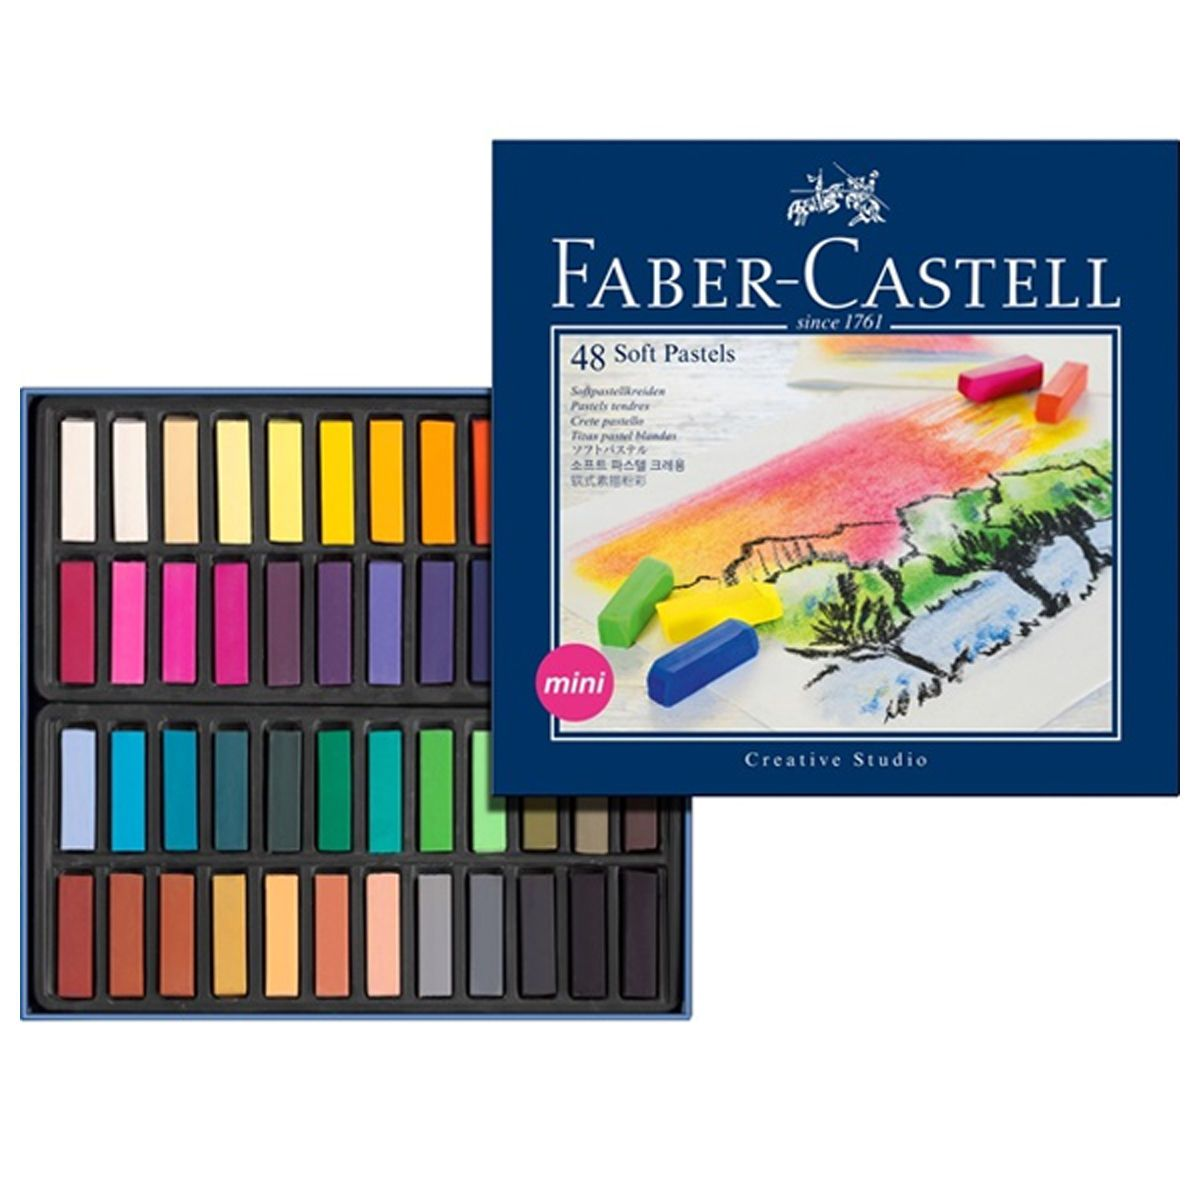 Faber Castell Artists Soft Pastels Box Set Of 48 Assorted Colours